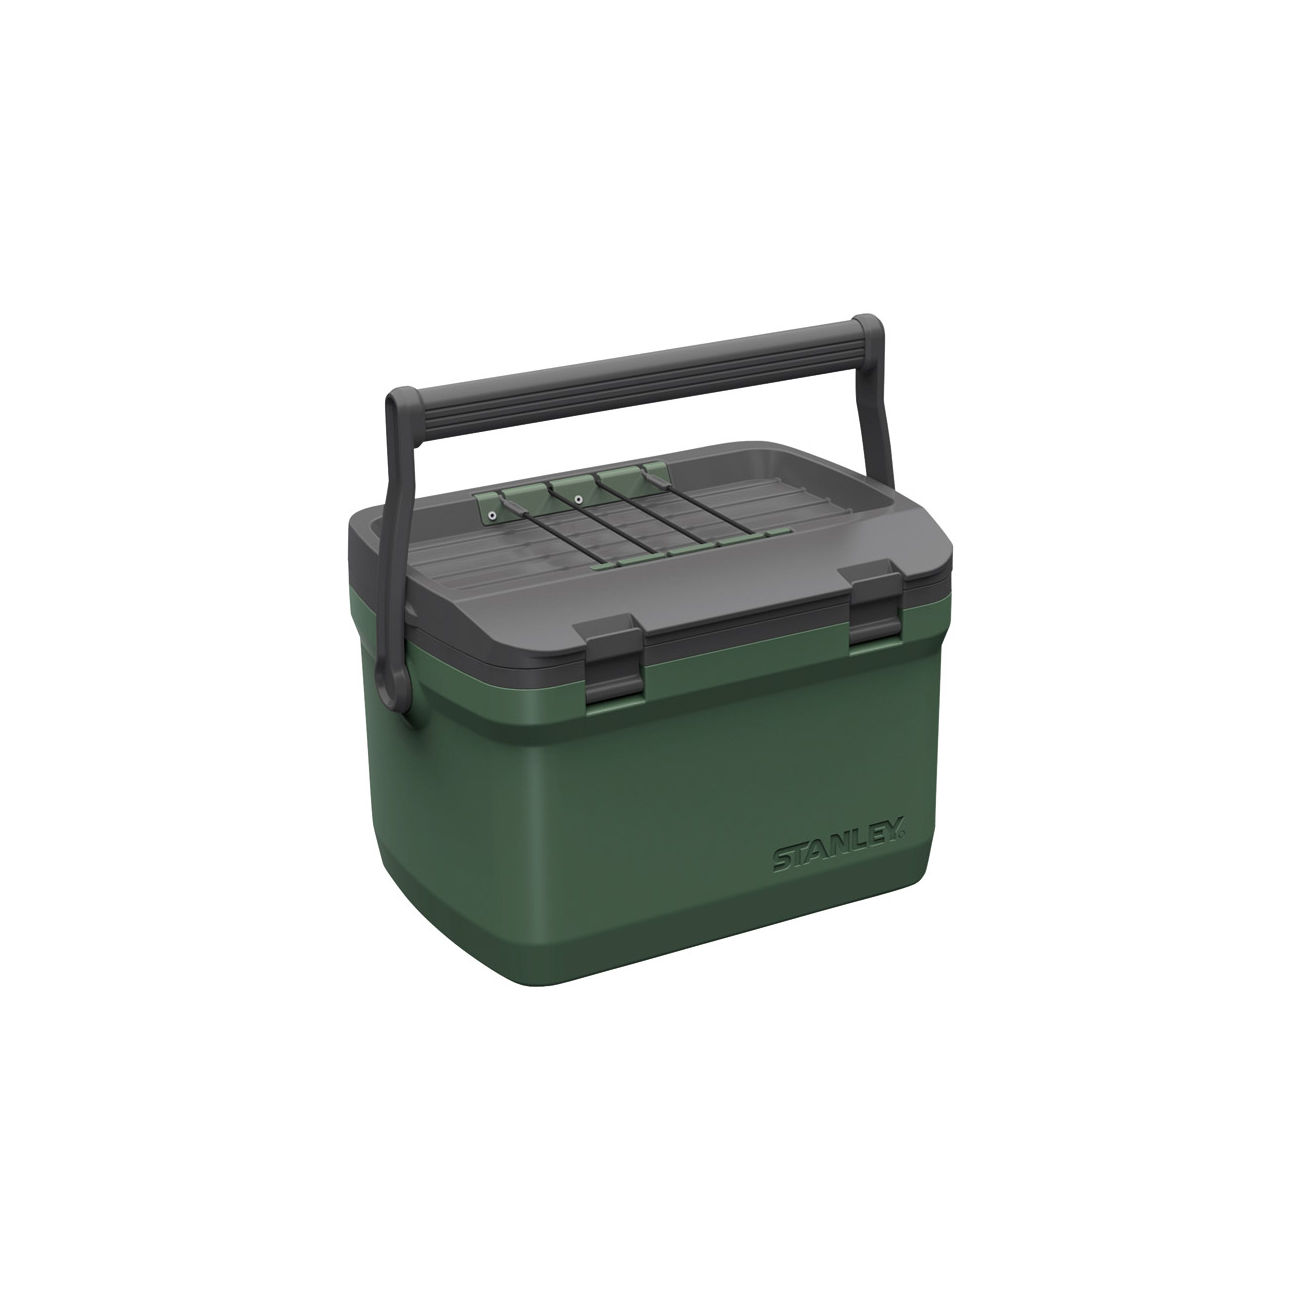 Stanley Kühlbox Adventure Cooler 15,1 Liter grün 0